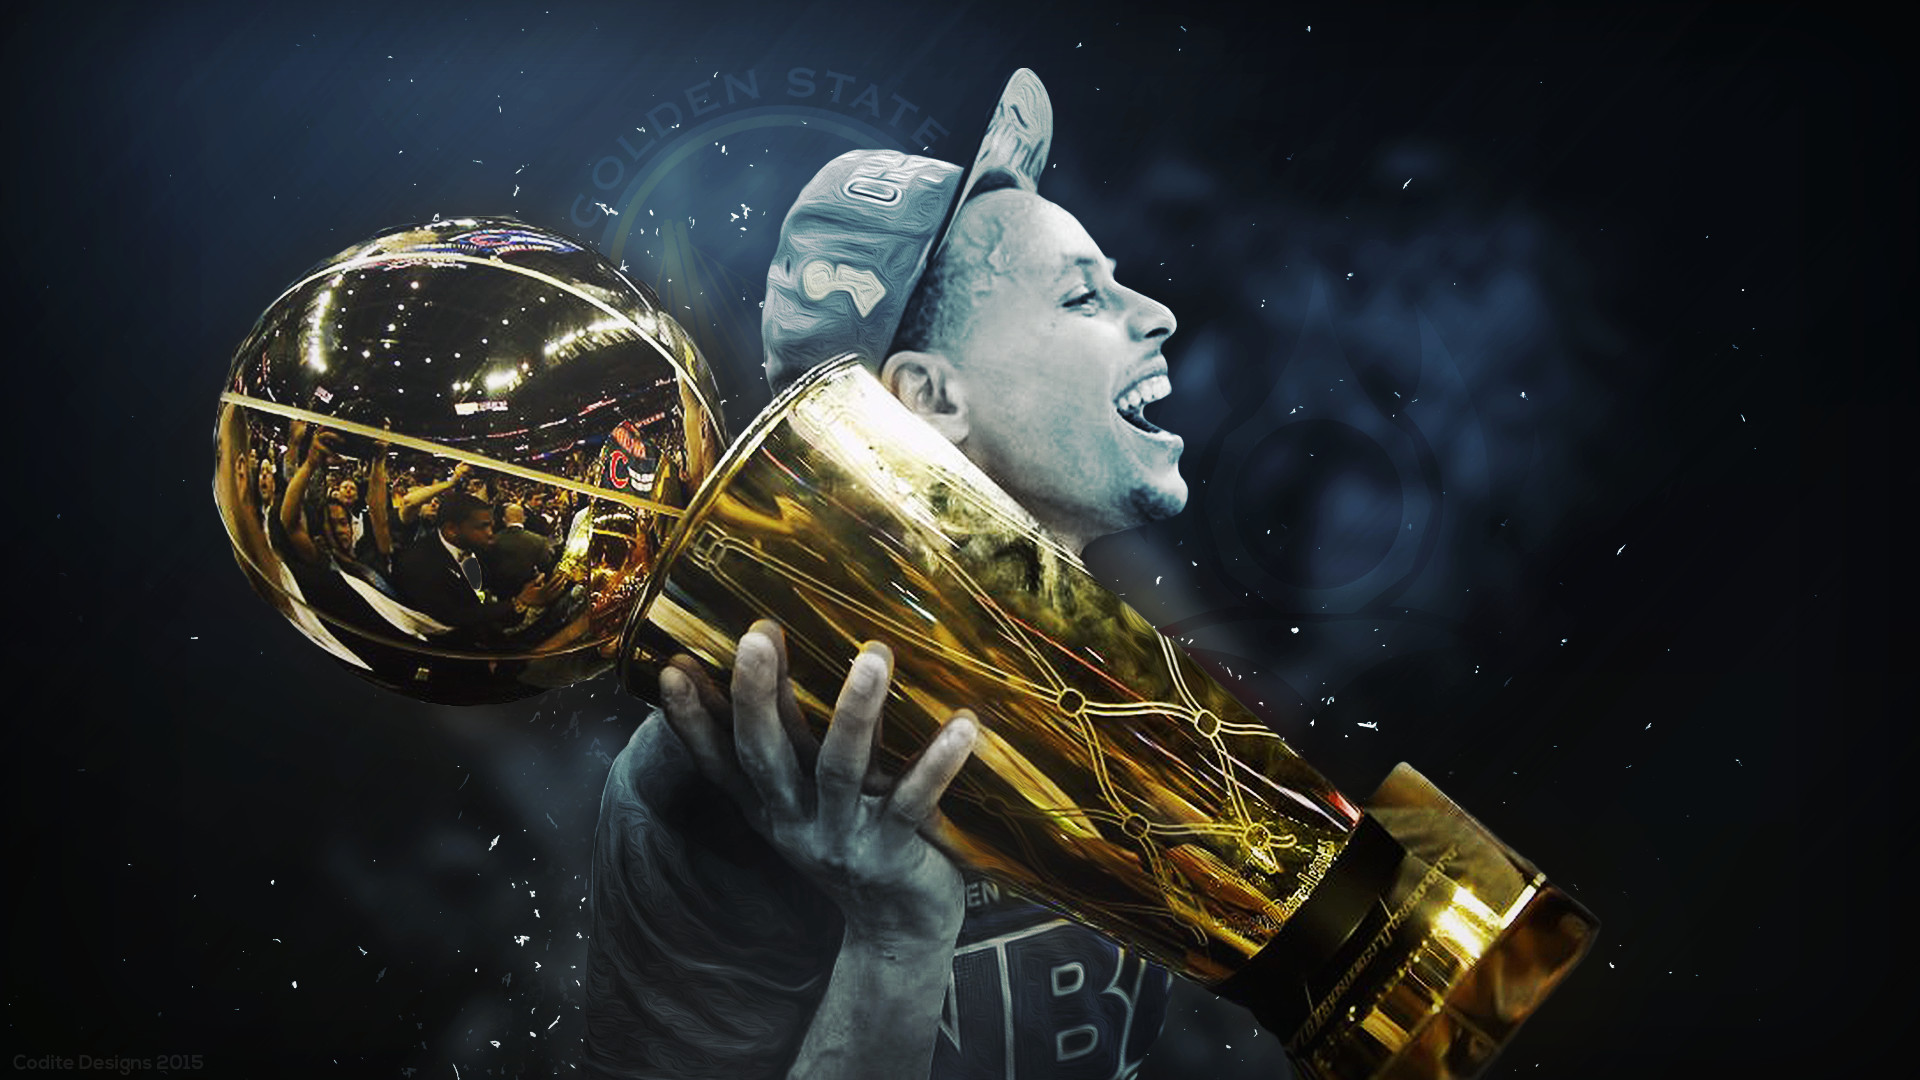 1920x1080 Stephen Curry Wallpaper Free Download | Wallpapers, Backgrounds ... | look  at this | Pinterest | Stephen curry wallpaper, Curry wallpaper and Stephen  curry